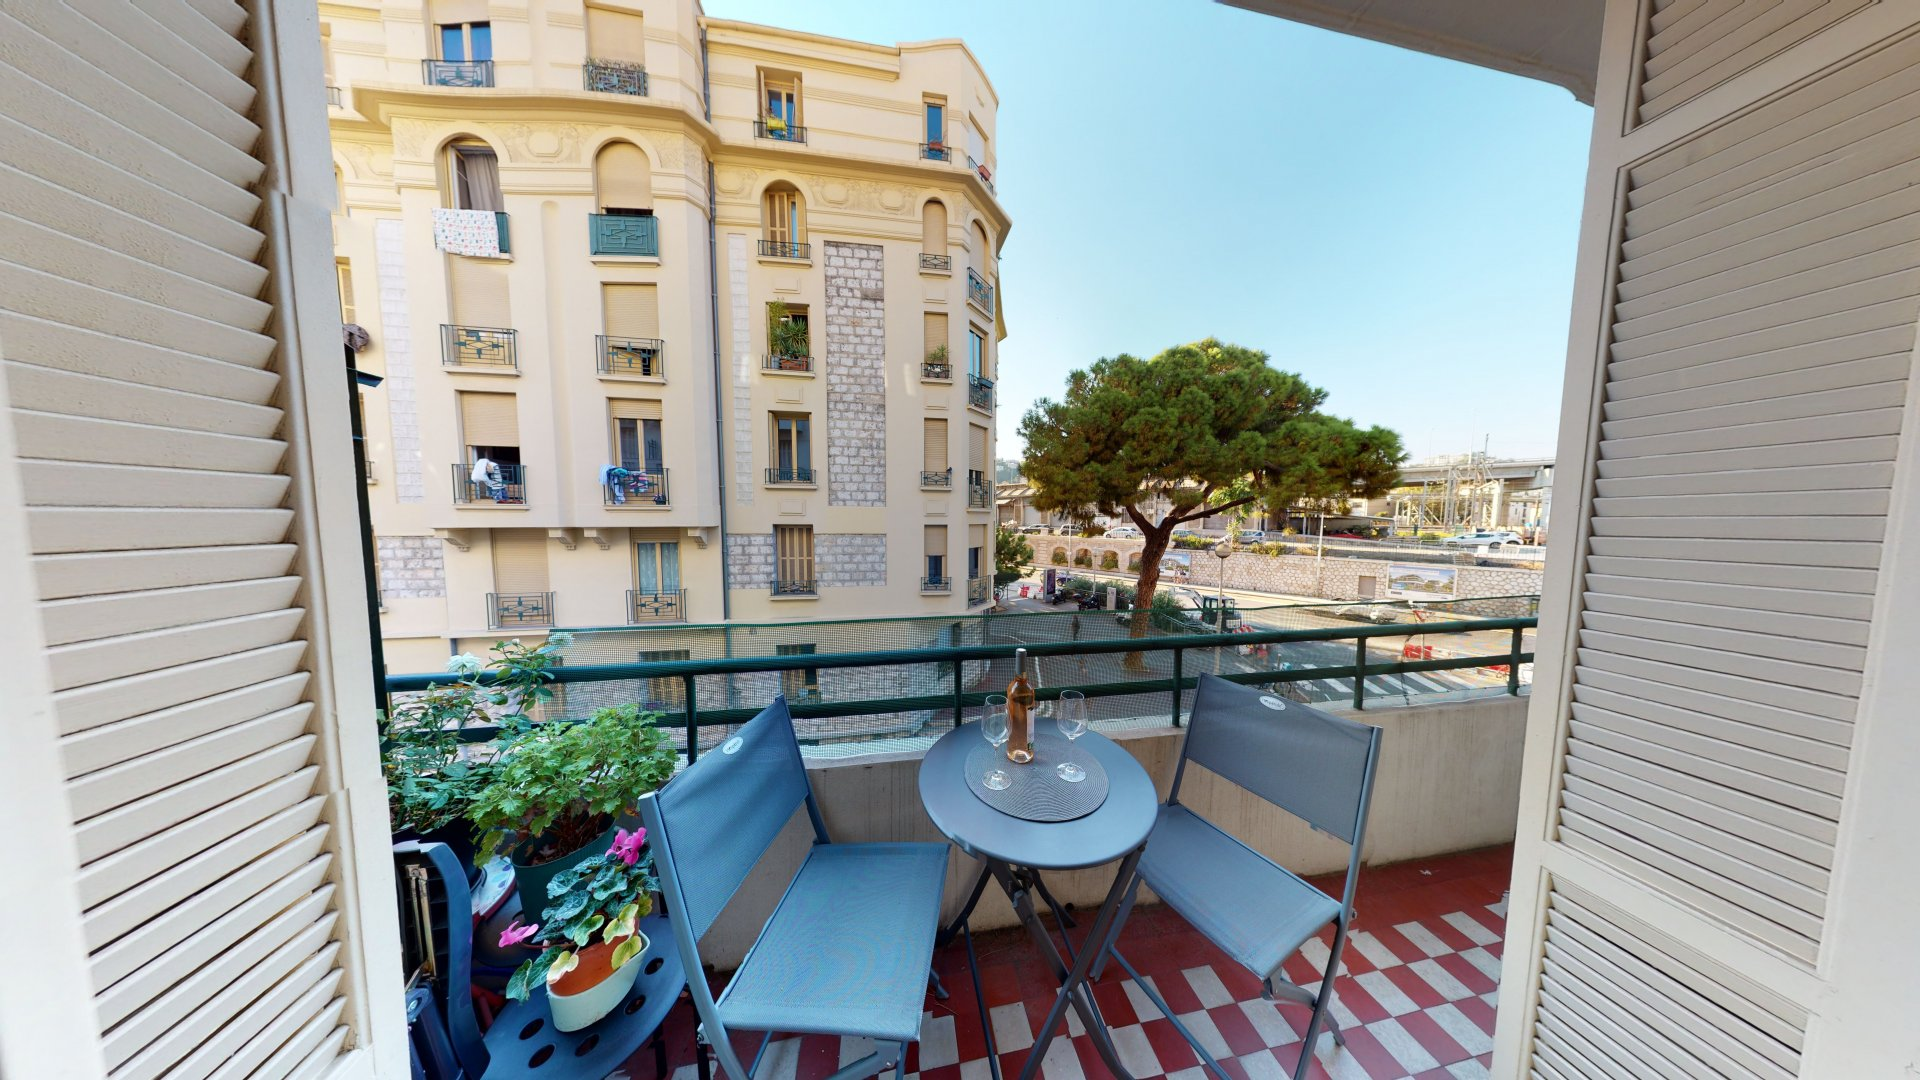 Renovated two bedroom property for sale in Nice Musiciens